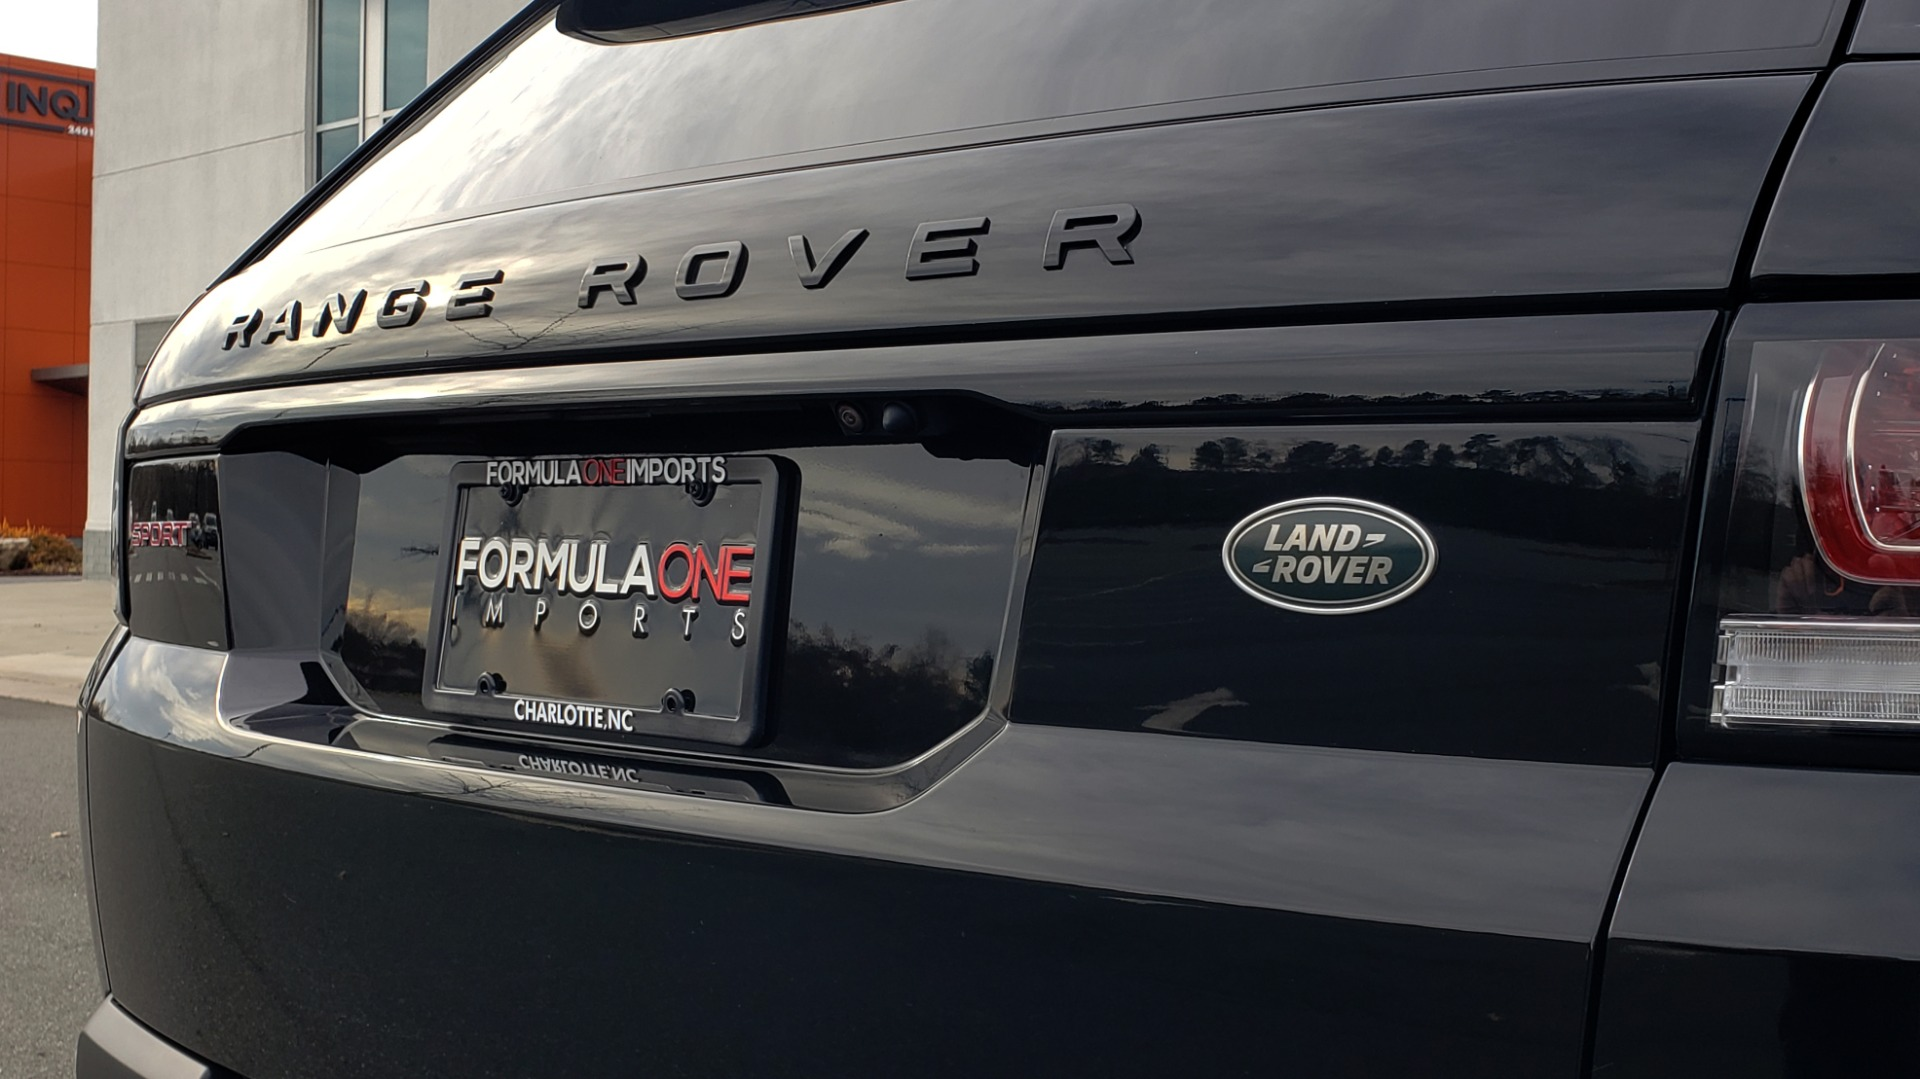 Used 2017 Land Rover RANGE ROVER SPORT HSE DYNAMIC / SC V6 / NAV / MERIDIAN / PANO-ROOF / REARVIEW for sale Sold at Formula Imports in Charlotte NC 28227 32